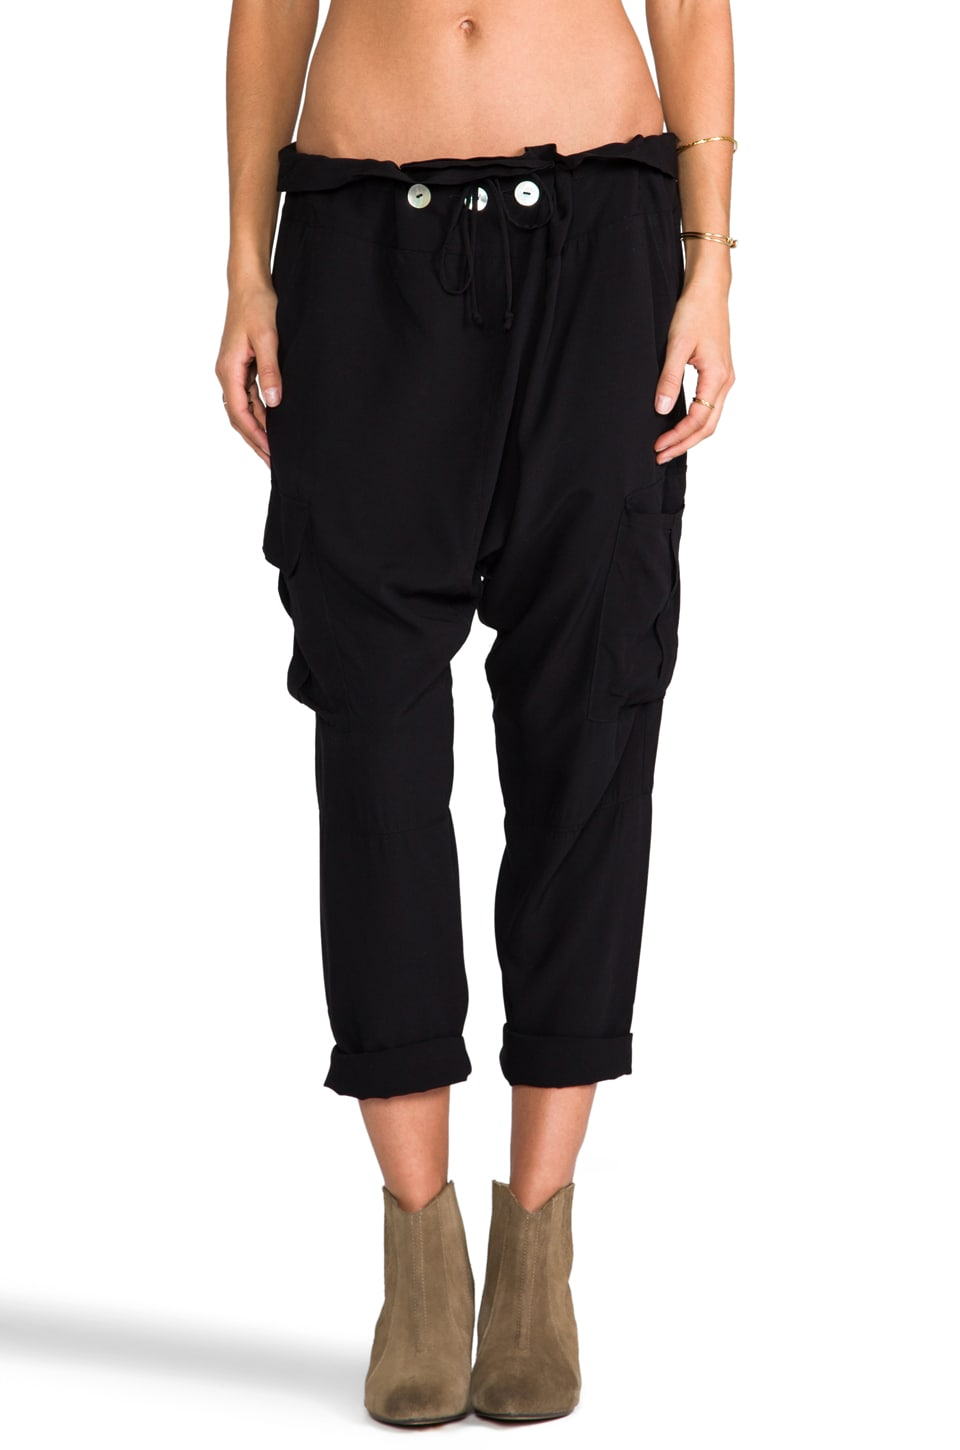 Blue Life Thai One On Pants in Black